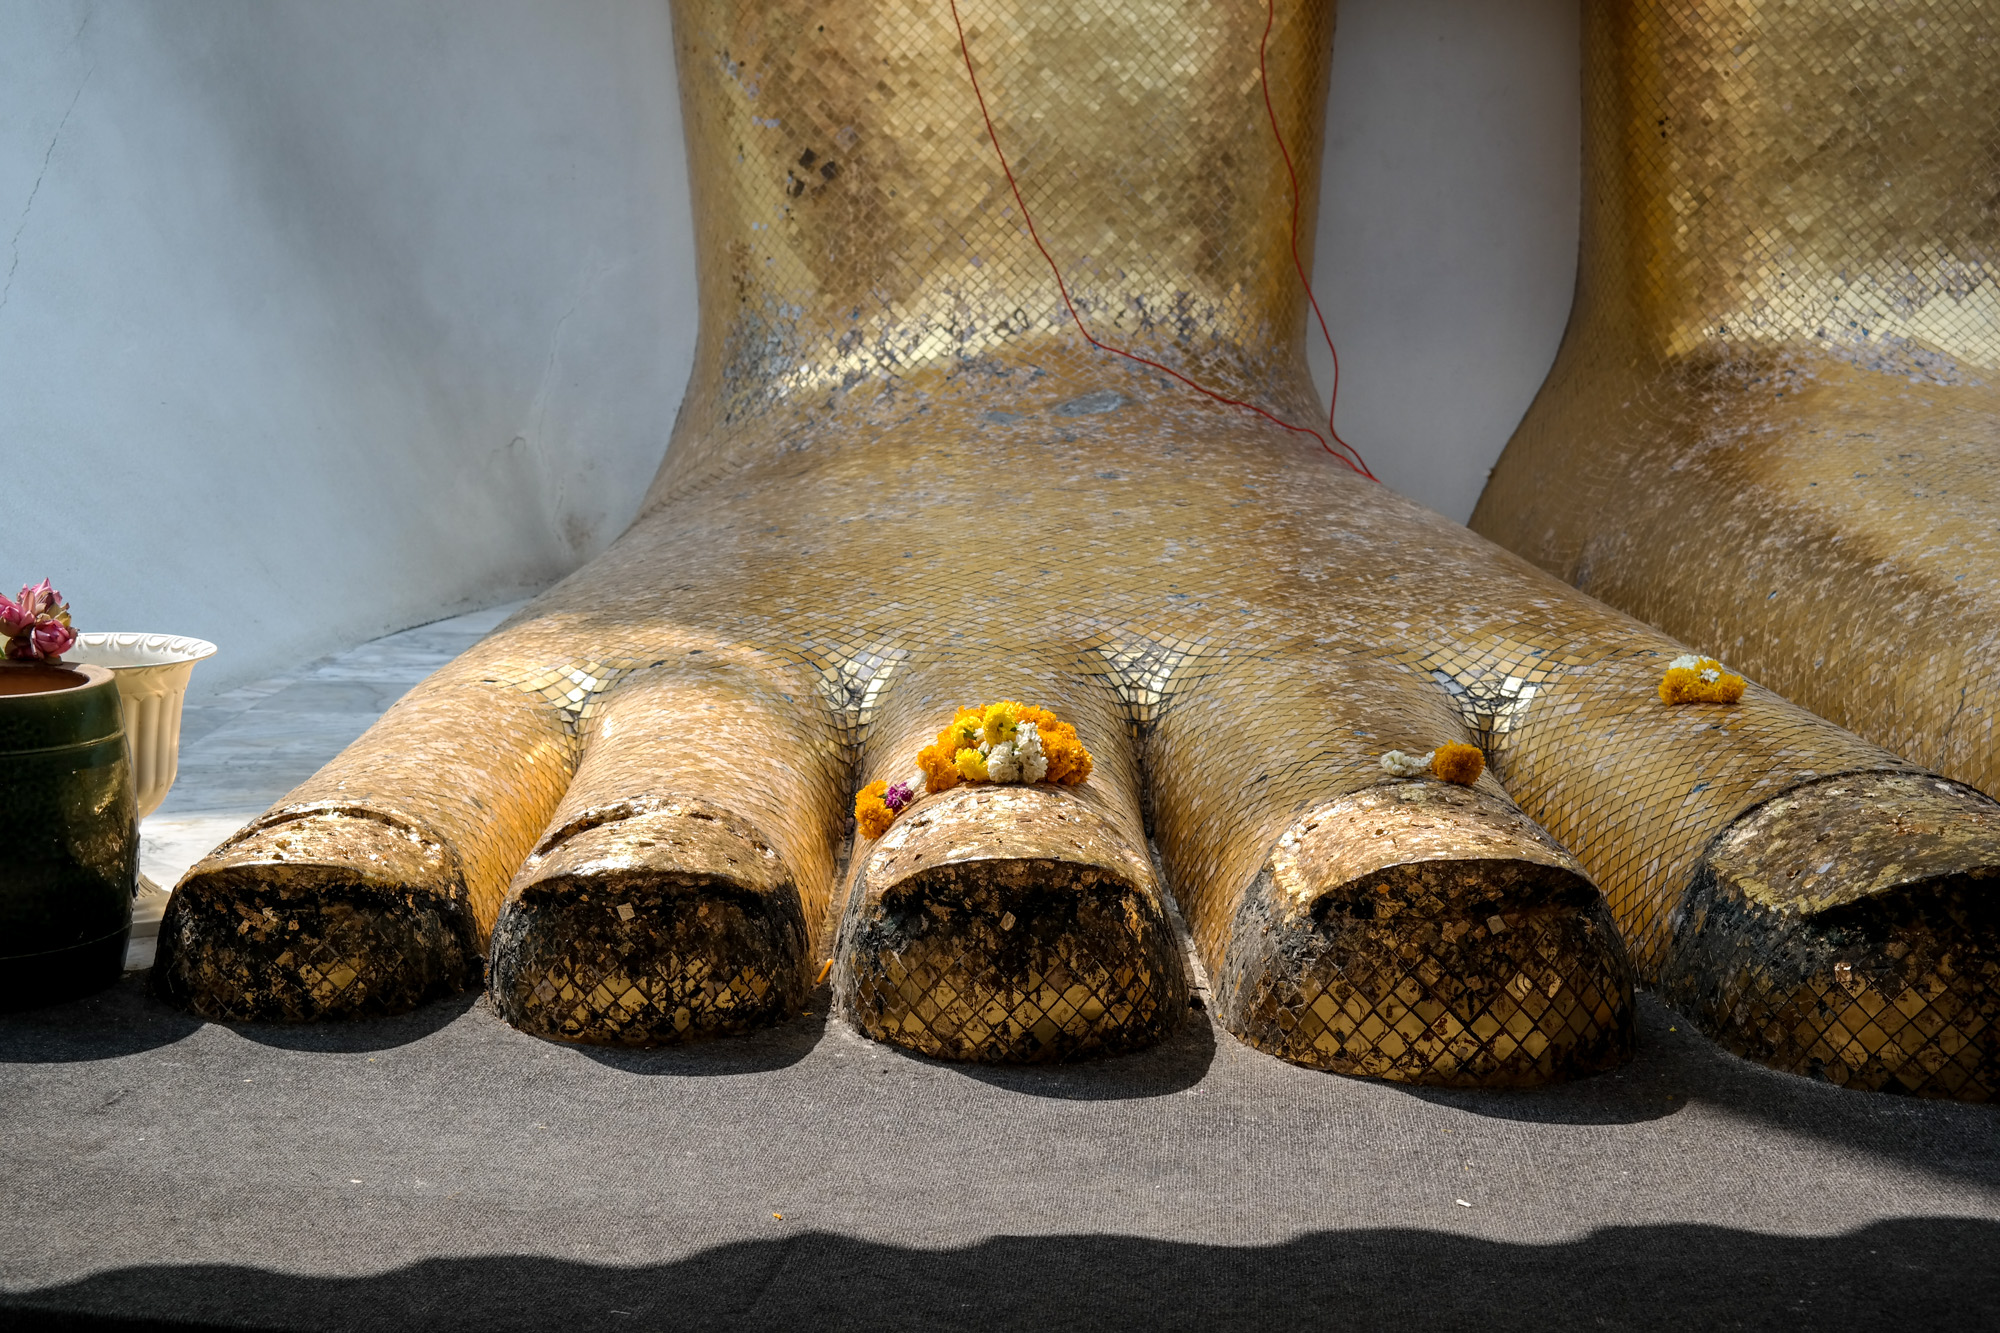 Foot of the 32 meter tall Luang Pho Tho statue (Standing Buddha) at the Wat Intharawihan, a buddhist temple.